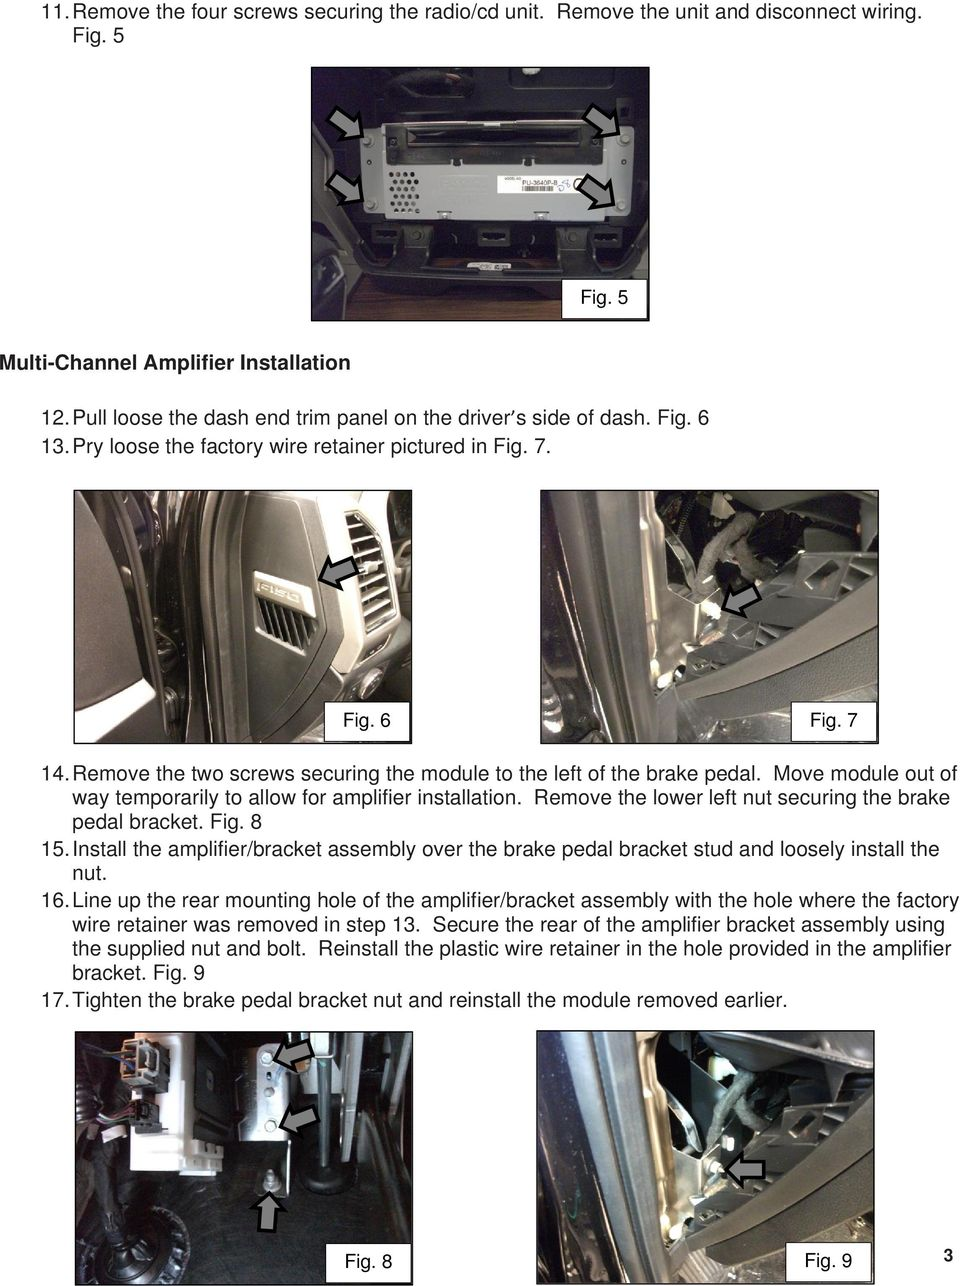 Remove the two screws securing the module to the left of the brake pedal. Move module out of way temporarily to allow for amplifier installation.